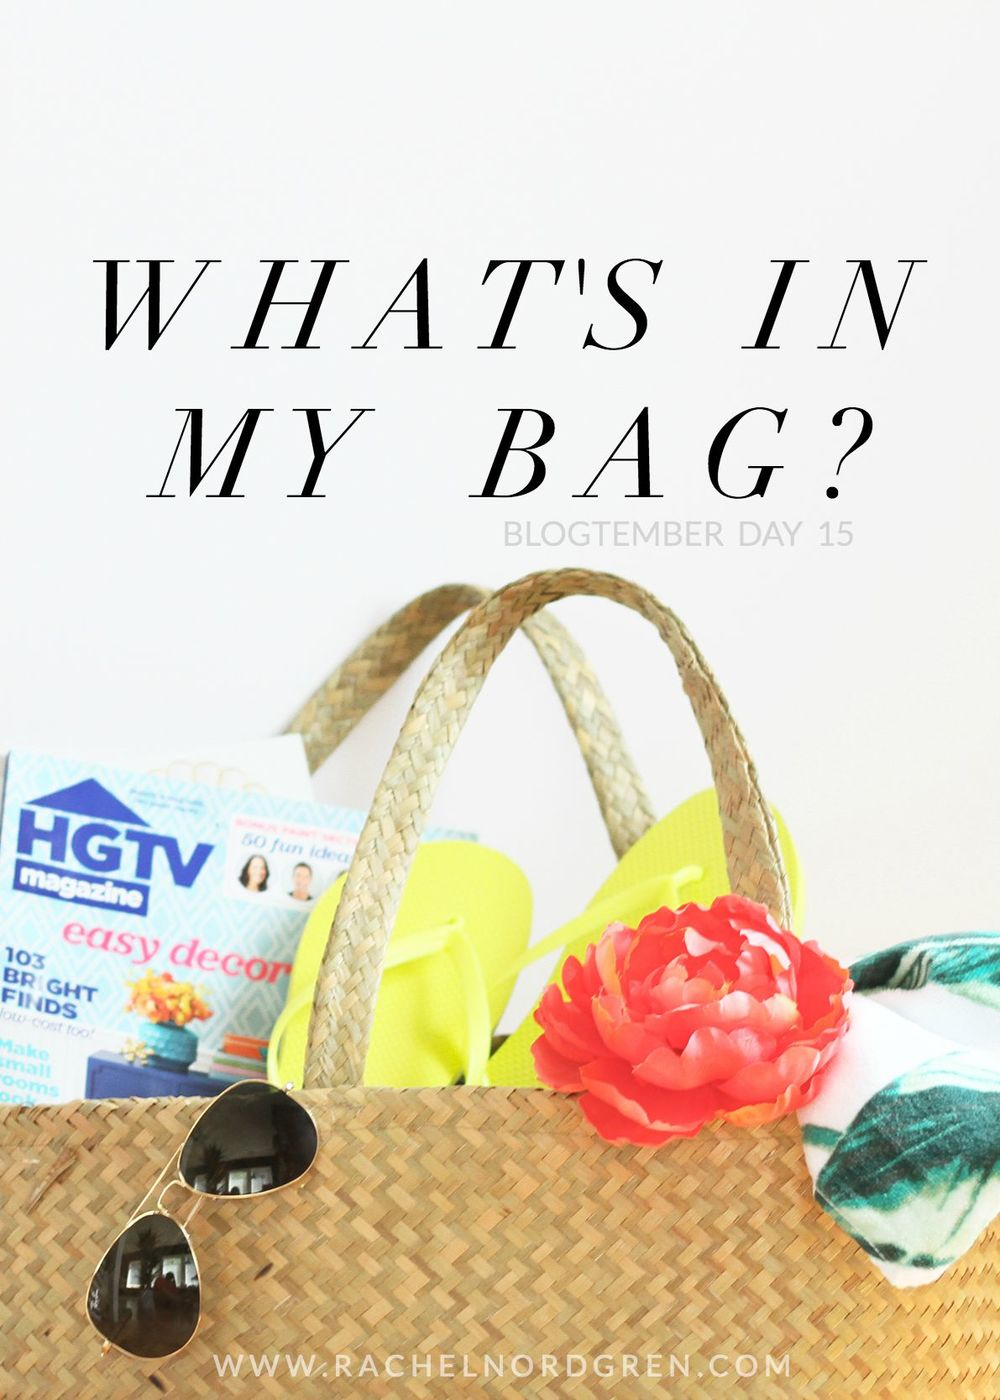 Blogtember Challenge: What's in my bag?